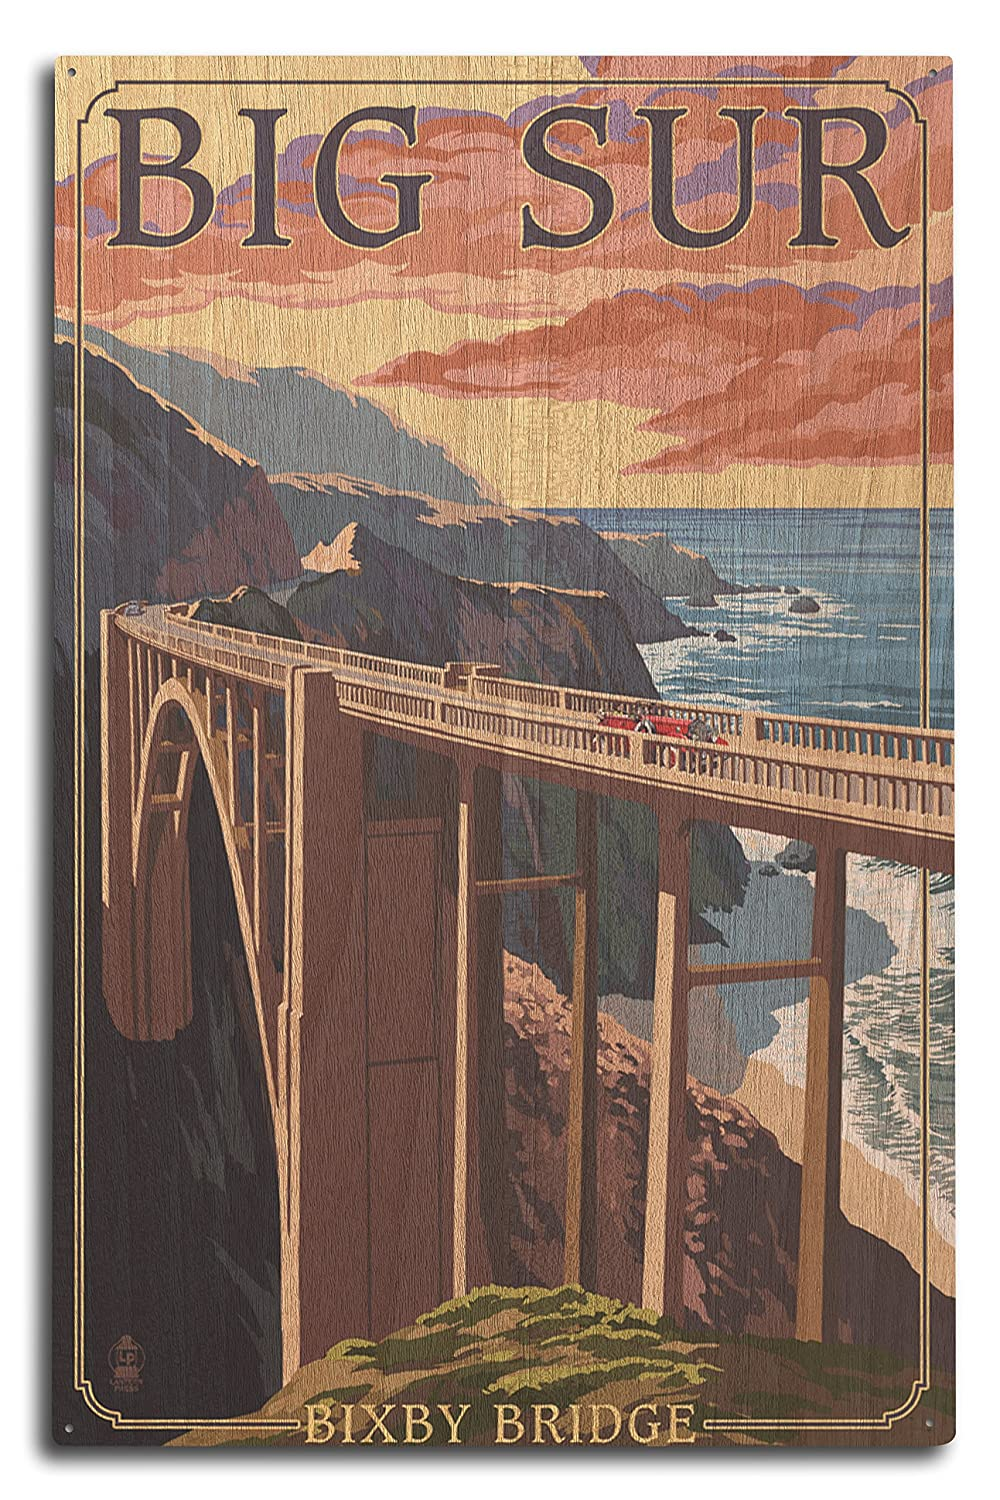 Bixby Bridge – California Coast 10 x 15 Wood Sign LANT-32750-10x15W 10 x 15 Wood Sign  B07367N2QX